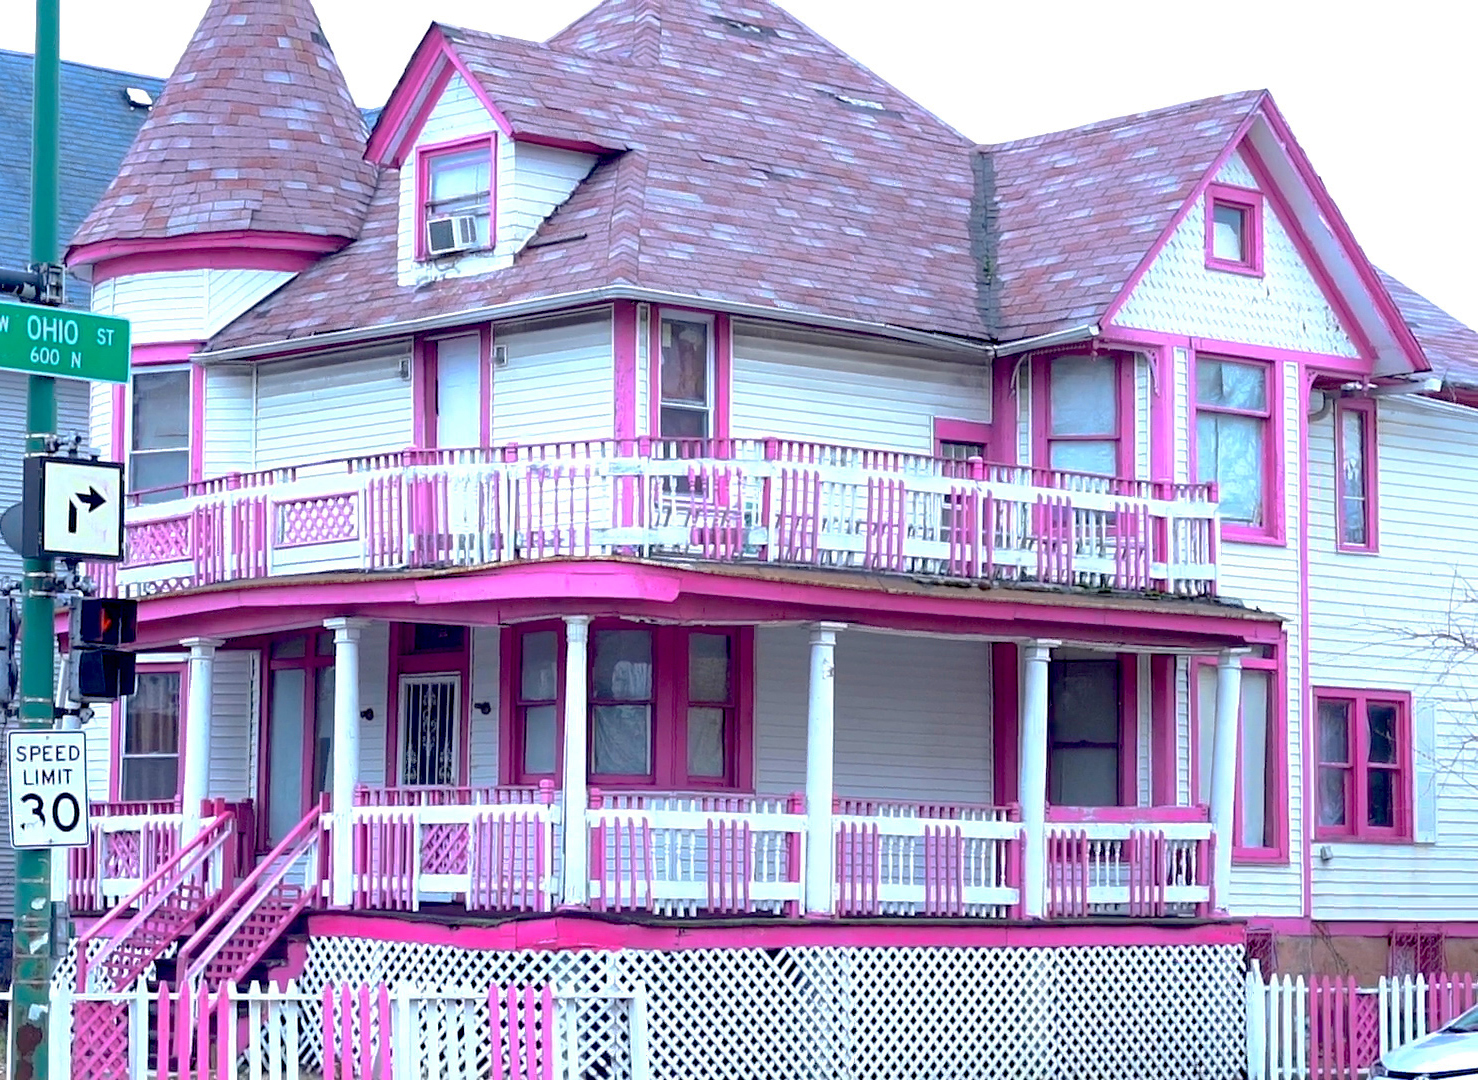 Victorian home of Yolanda Anderson built in 1894